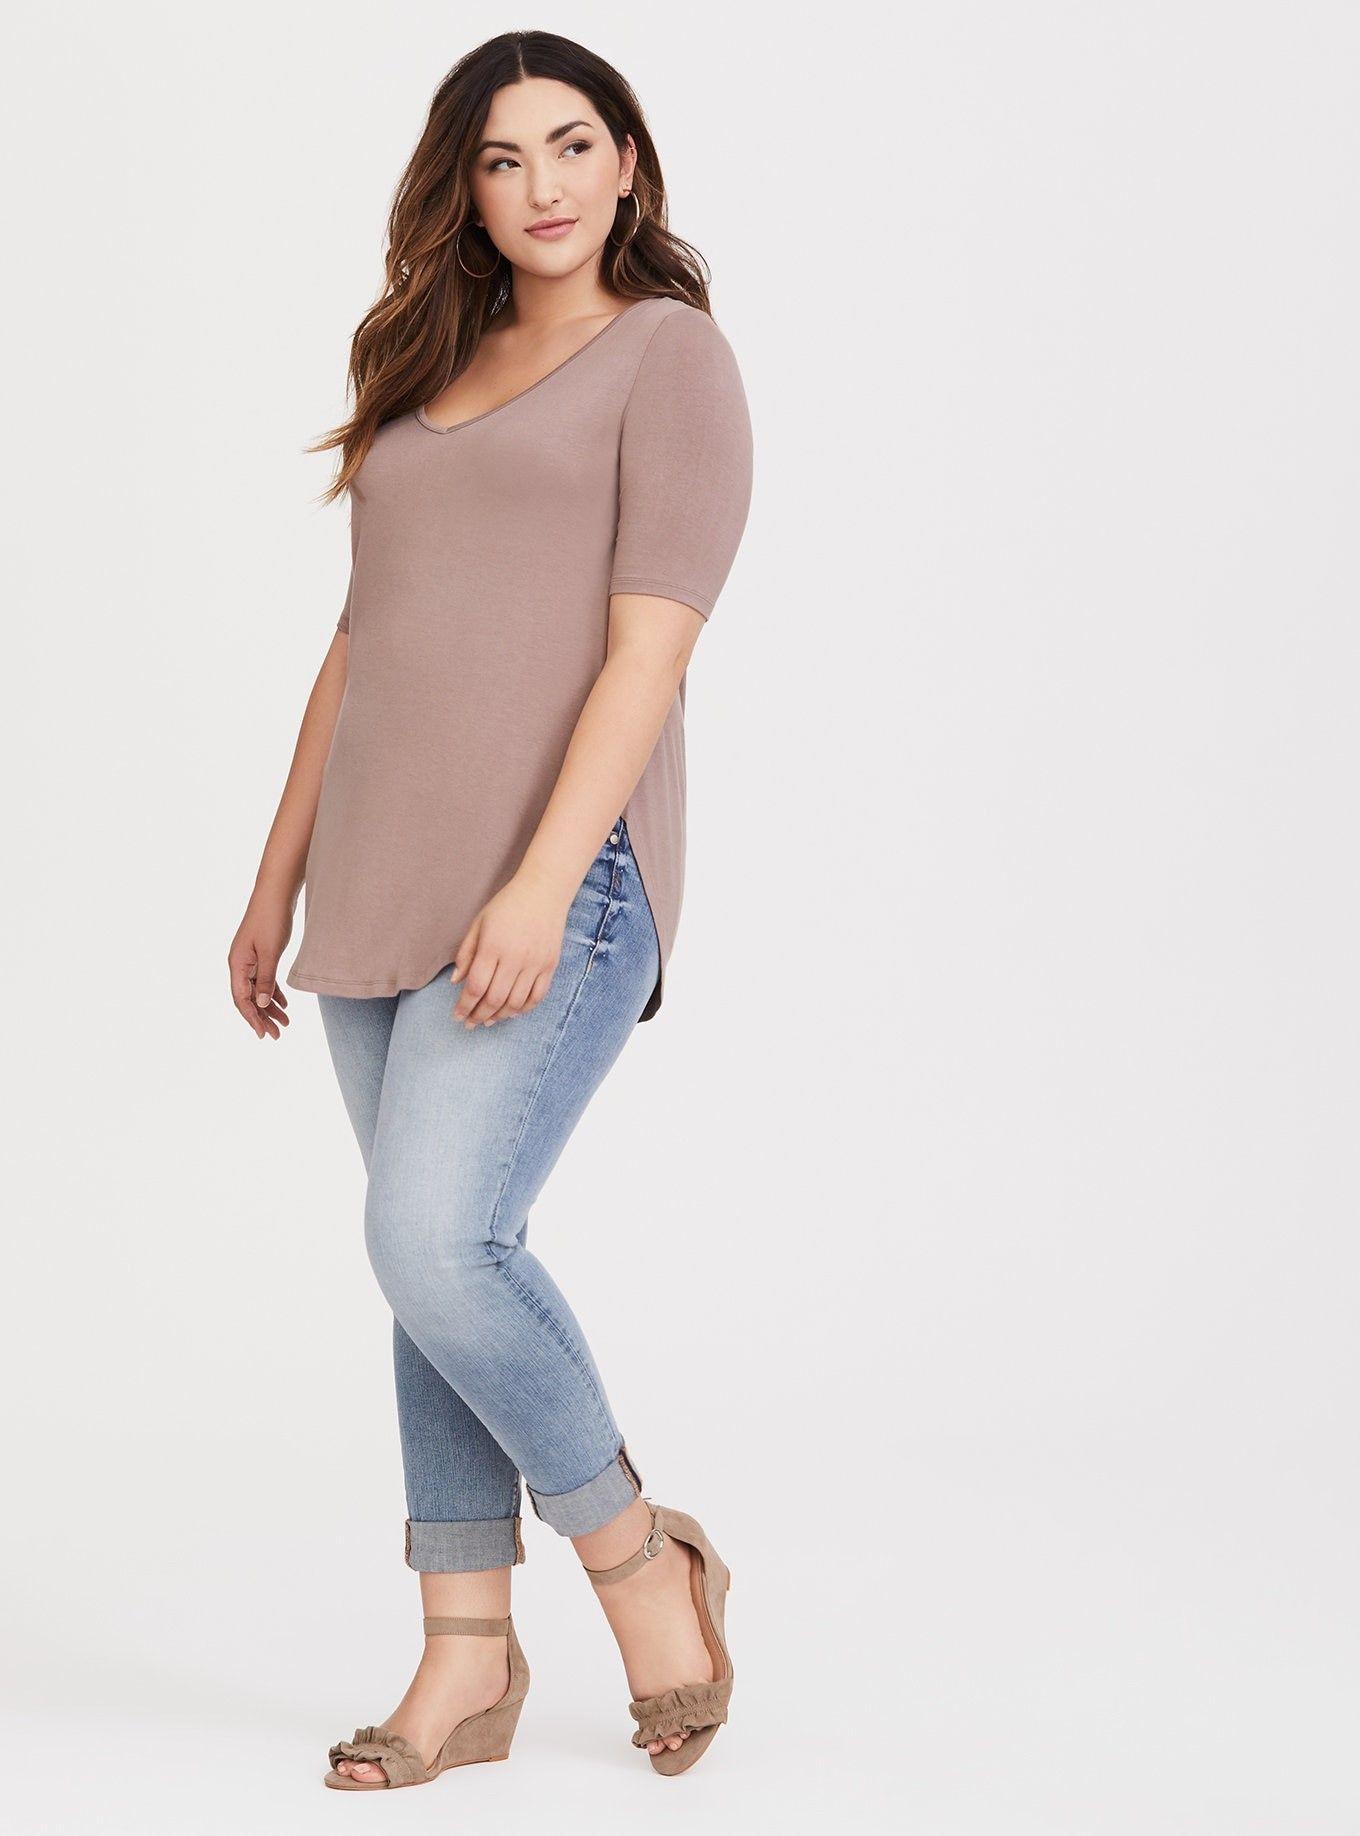 901bdbee559 Boyfriend Jean - Light Wash - Relaxed up top with a slim, straight leg,